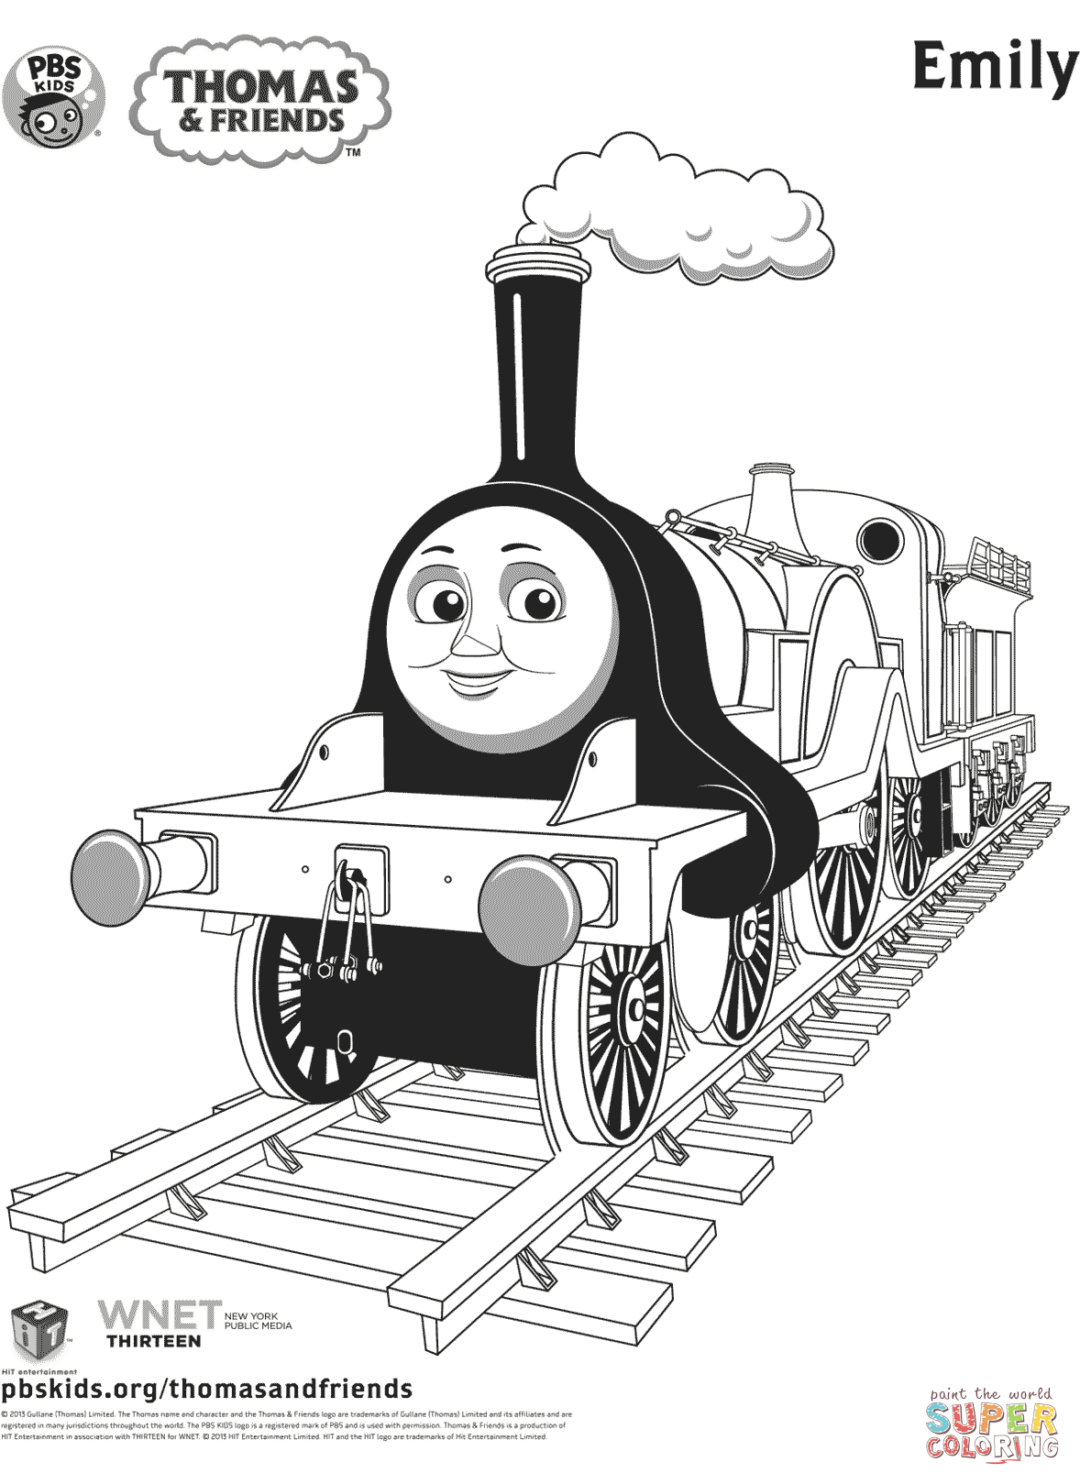 emily the tank engine coloring pages emily coloring pages at getcoloringscom free printable the tank pages emily engine coloring